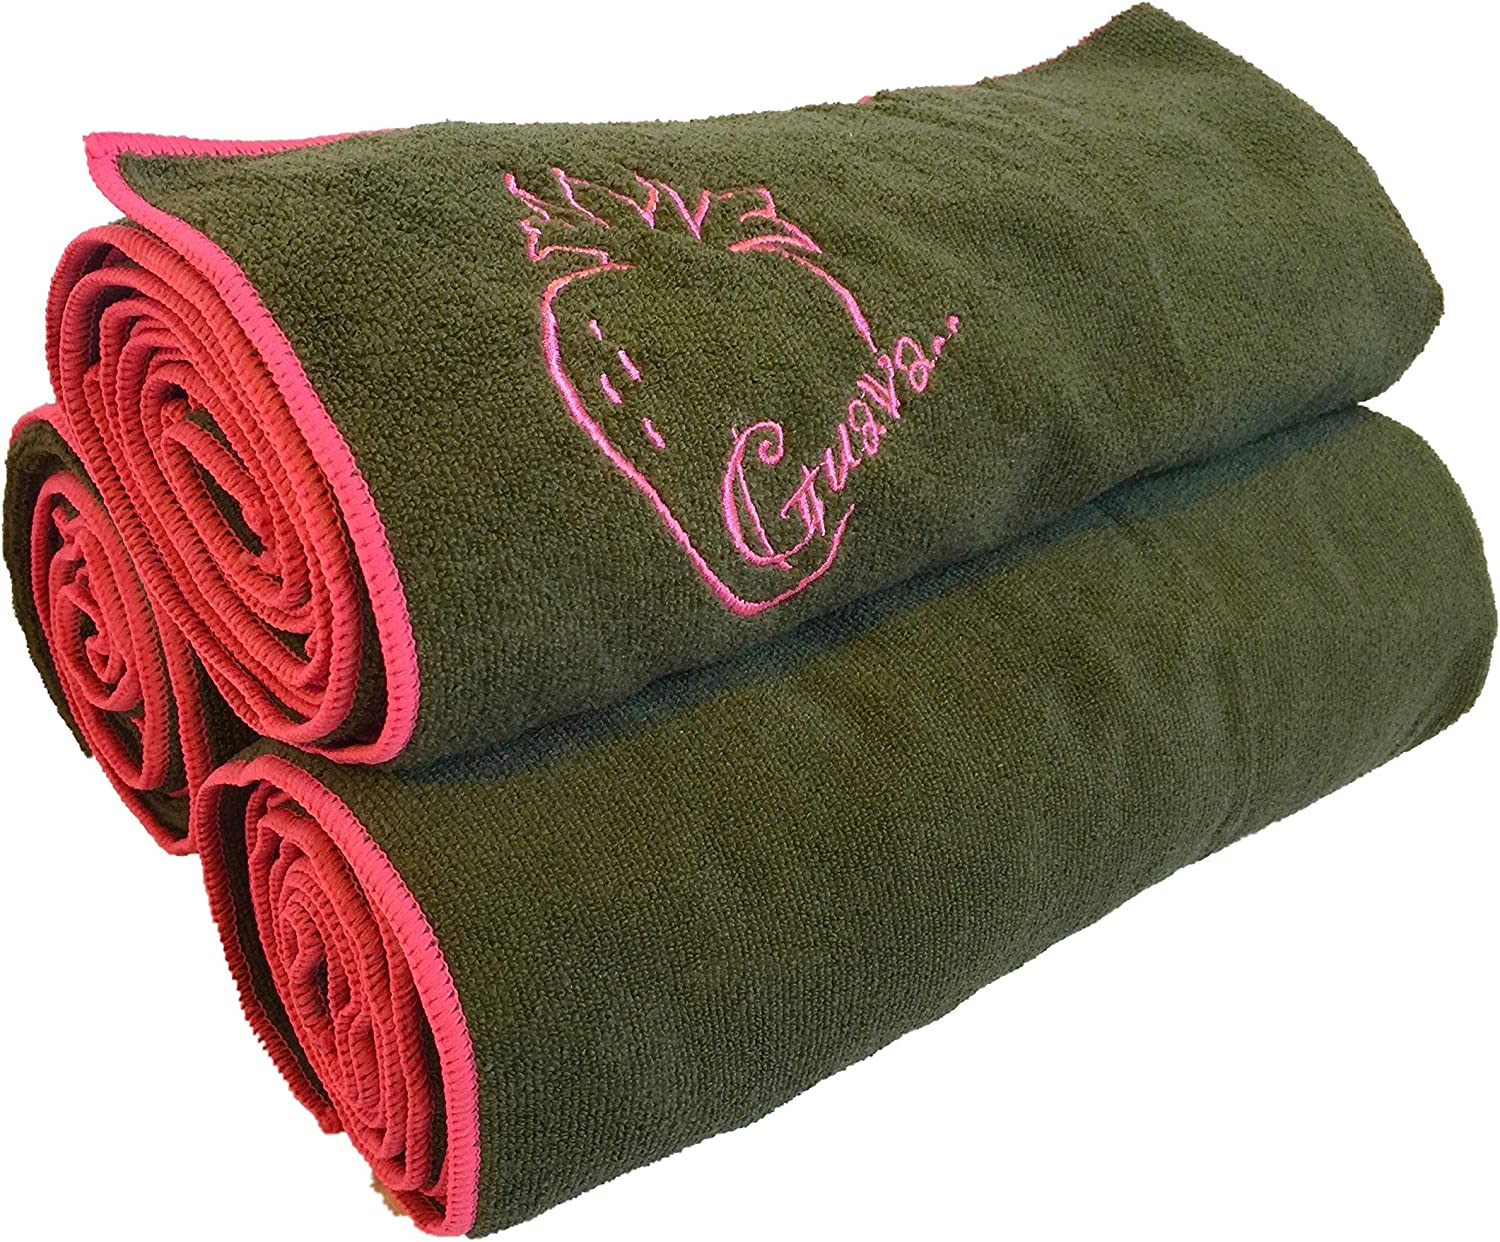 Yoga Towel Non Slip Premium Highly Durable Microfiber Perfect for Bikram Yoga